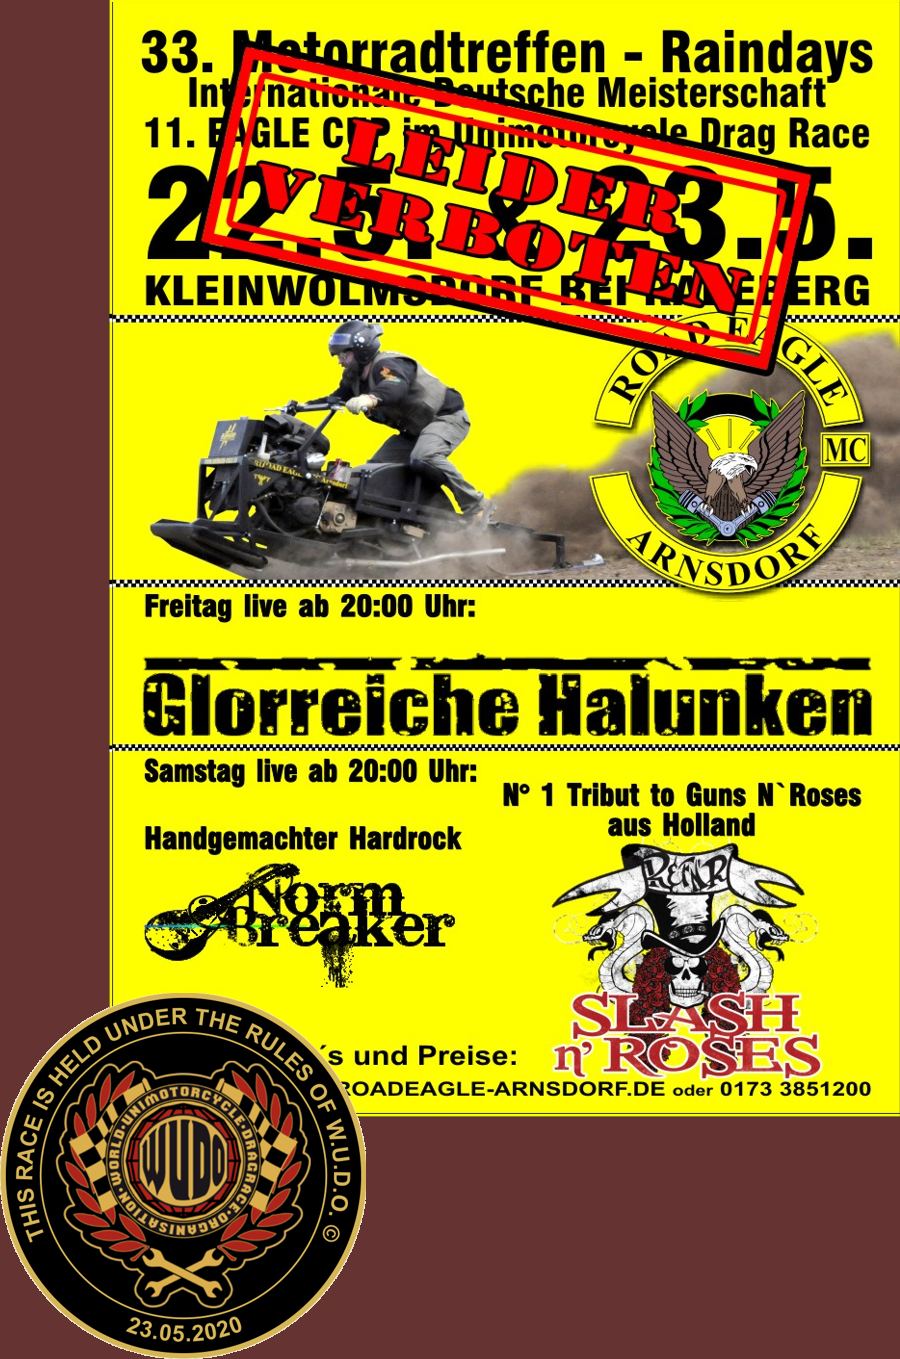 Internationale Deutsche Meisterschaft im Unimotorcycle Dragrace beim 11. Eagle Cup des Road Eagle MC Arnsdorf leider verboten